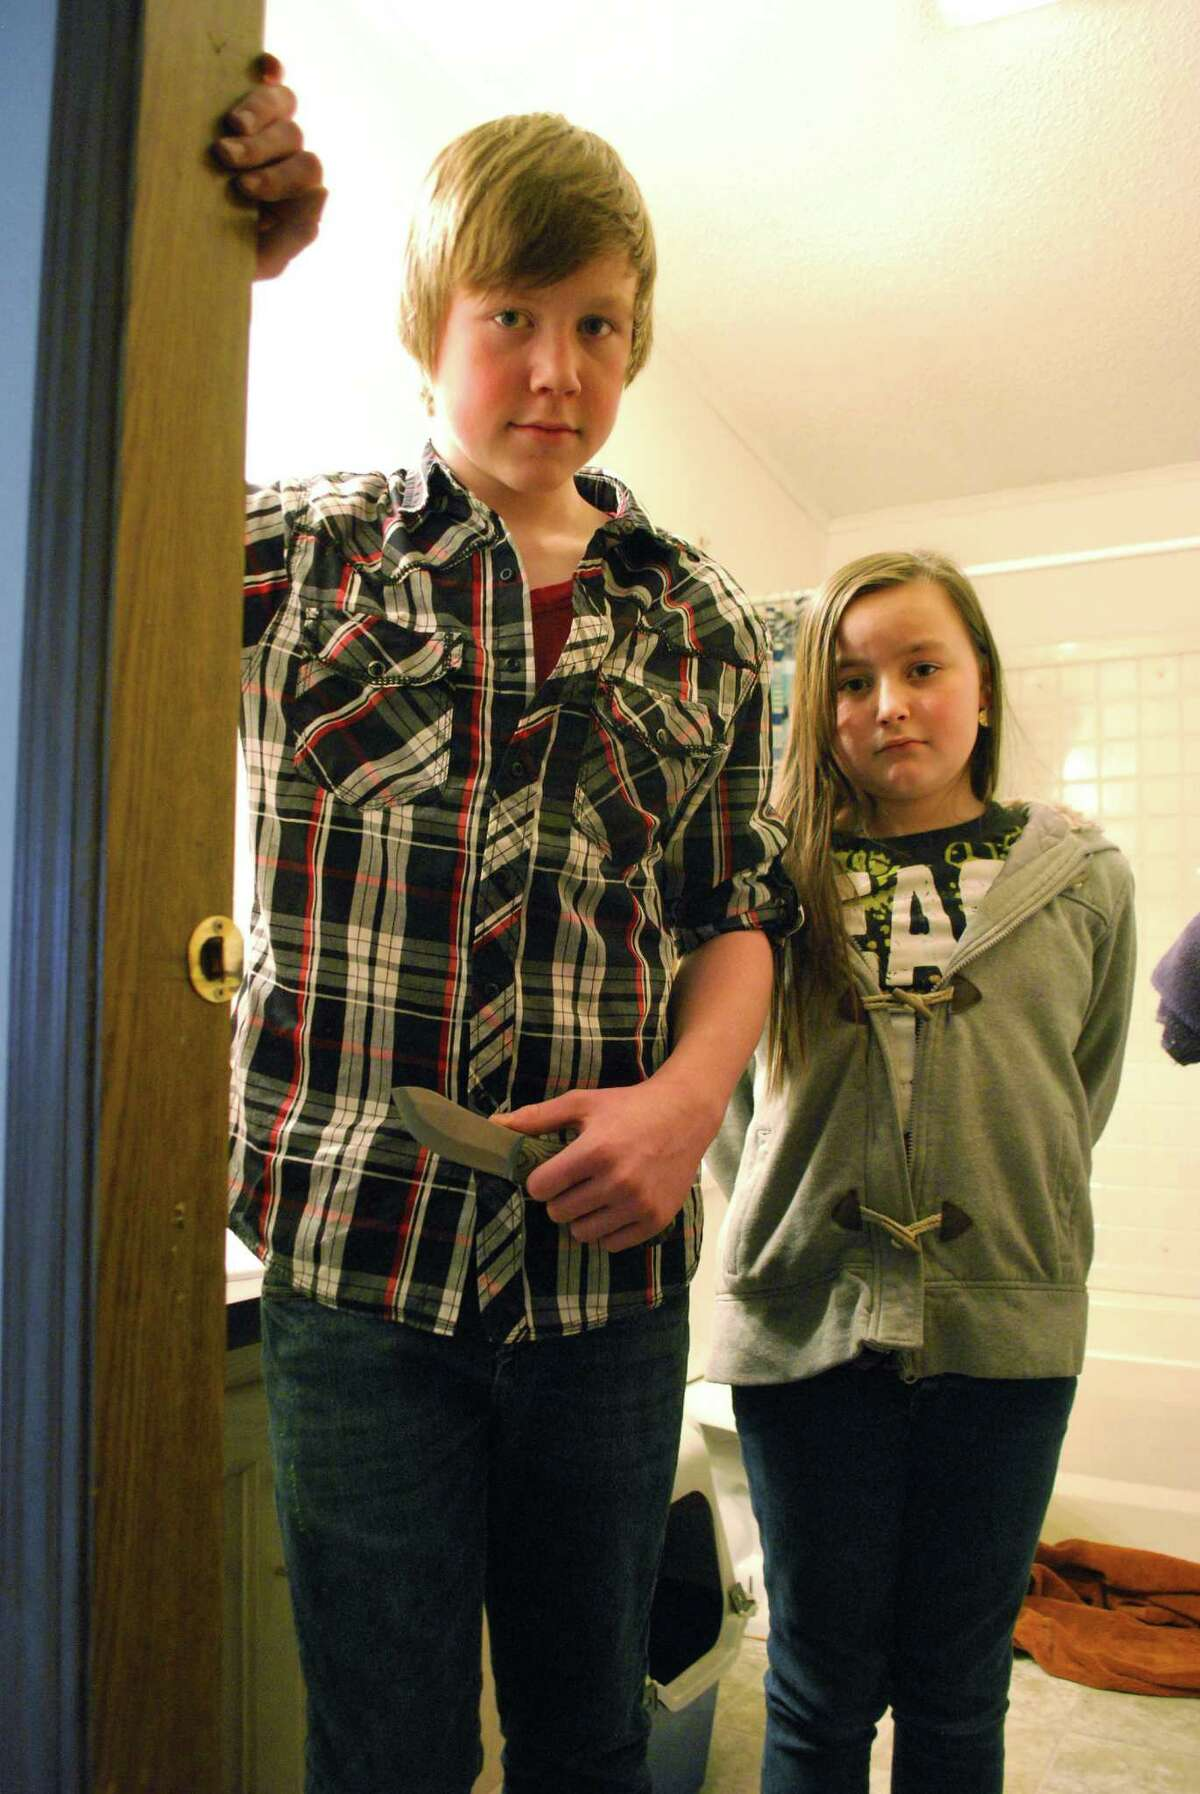 James Persyn III, 14, holds the knife he had on Wednesday night while posing for a picture with his sister Acelin Persyn, 11, a their Shepherd, Mich. home on Friday. Persyn was home alone with his sister and 2-year-old brother when he rescued a Central Michigan University student fleeing from gunman Eric Ramsey, who had earlier kidnapped and raped her.